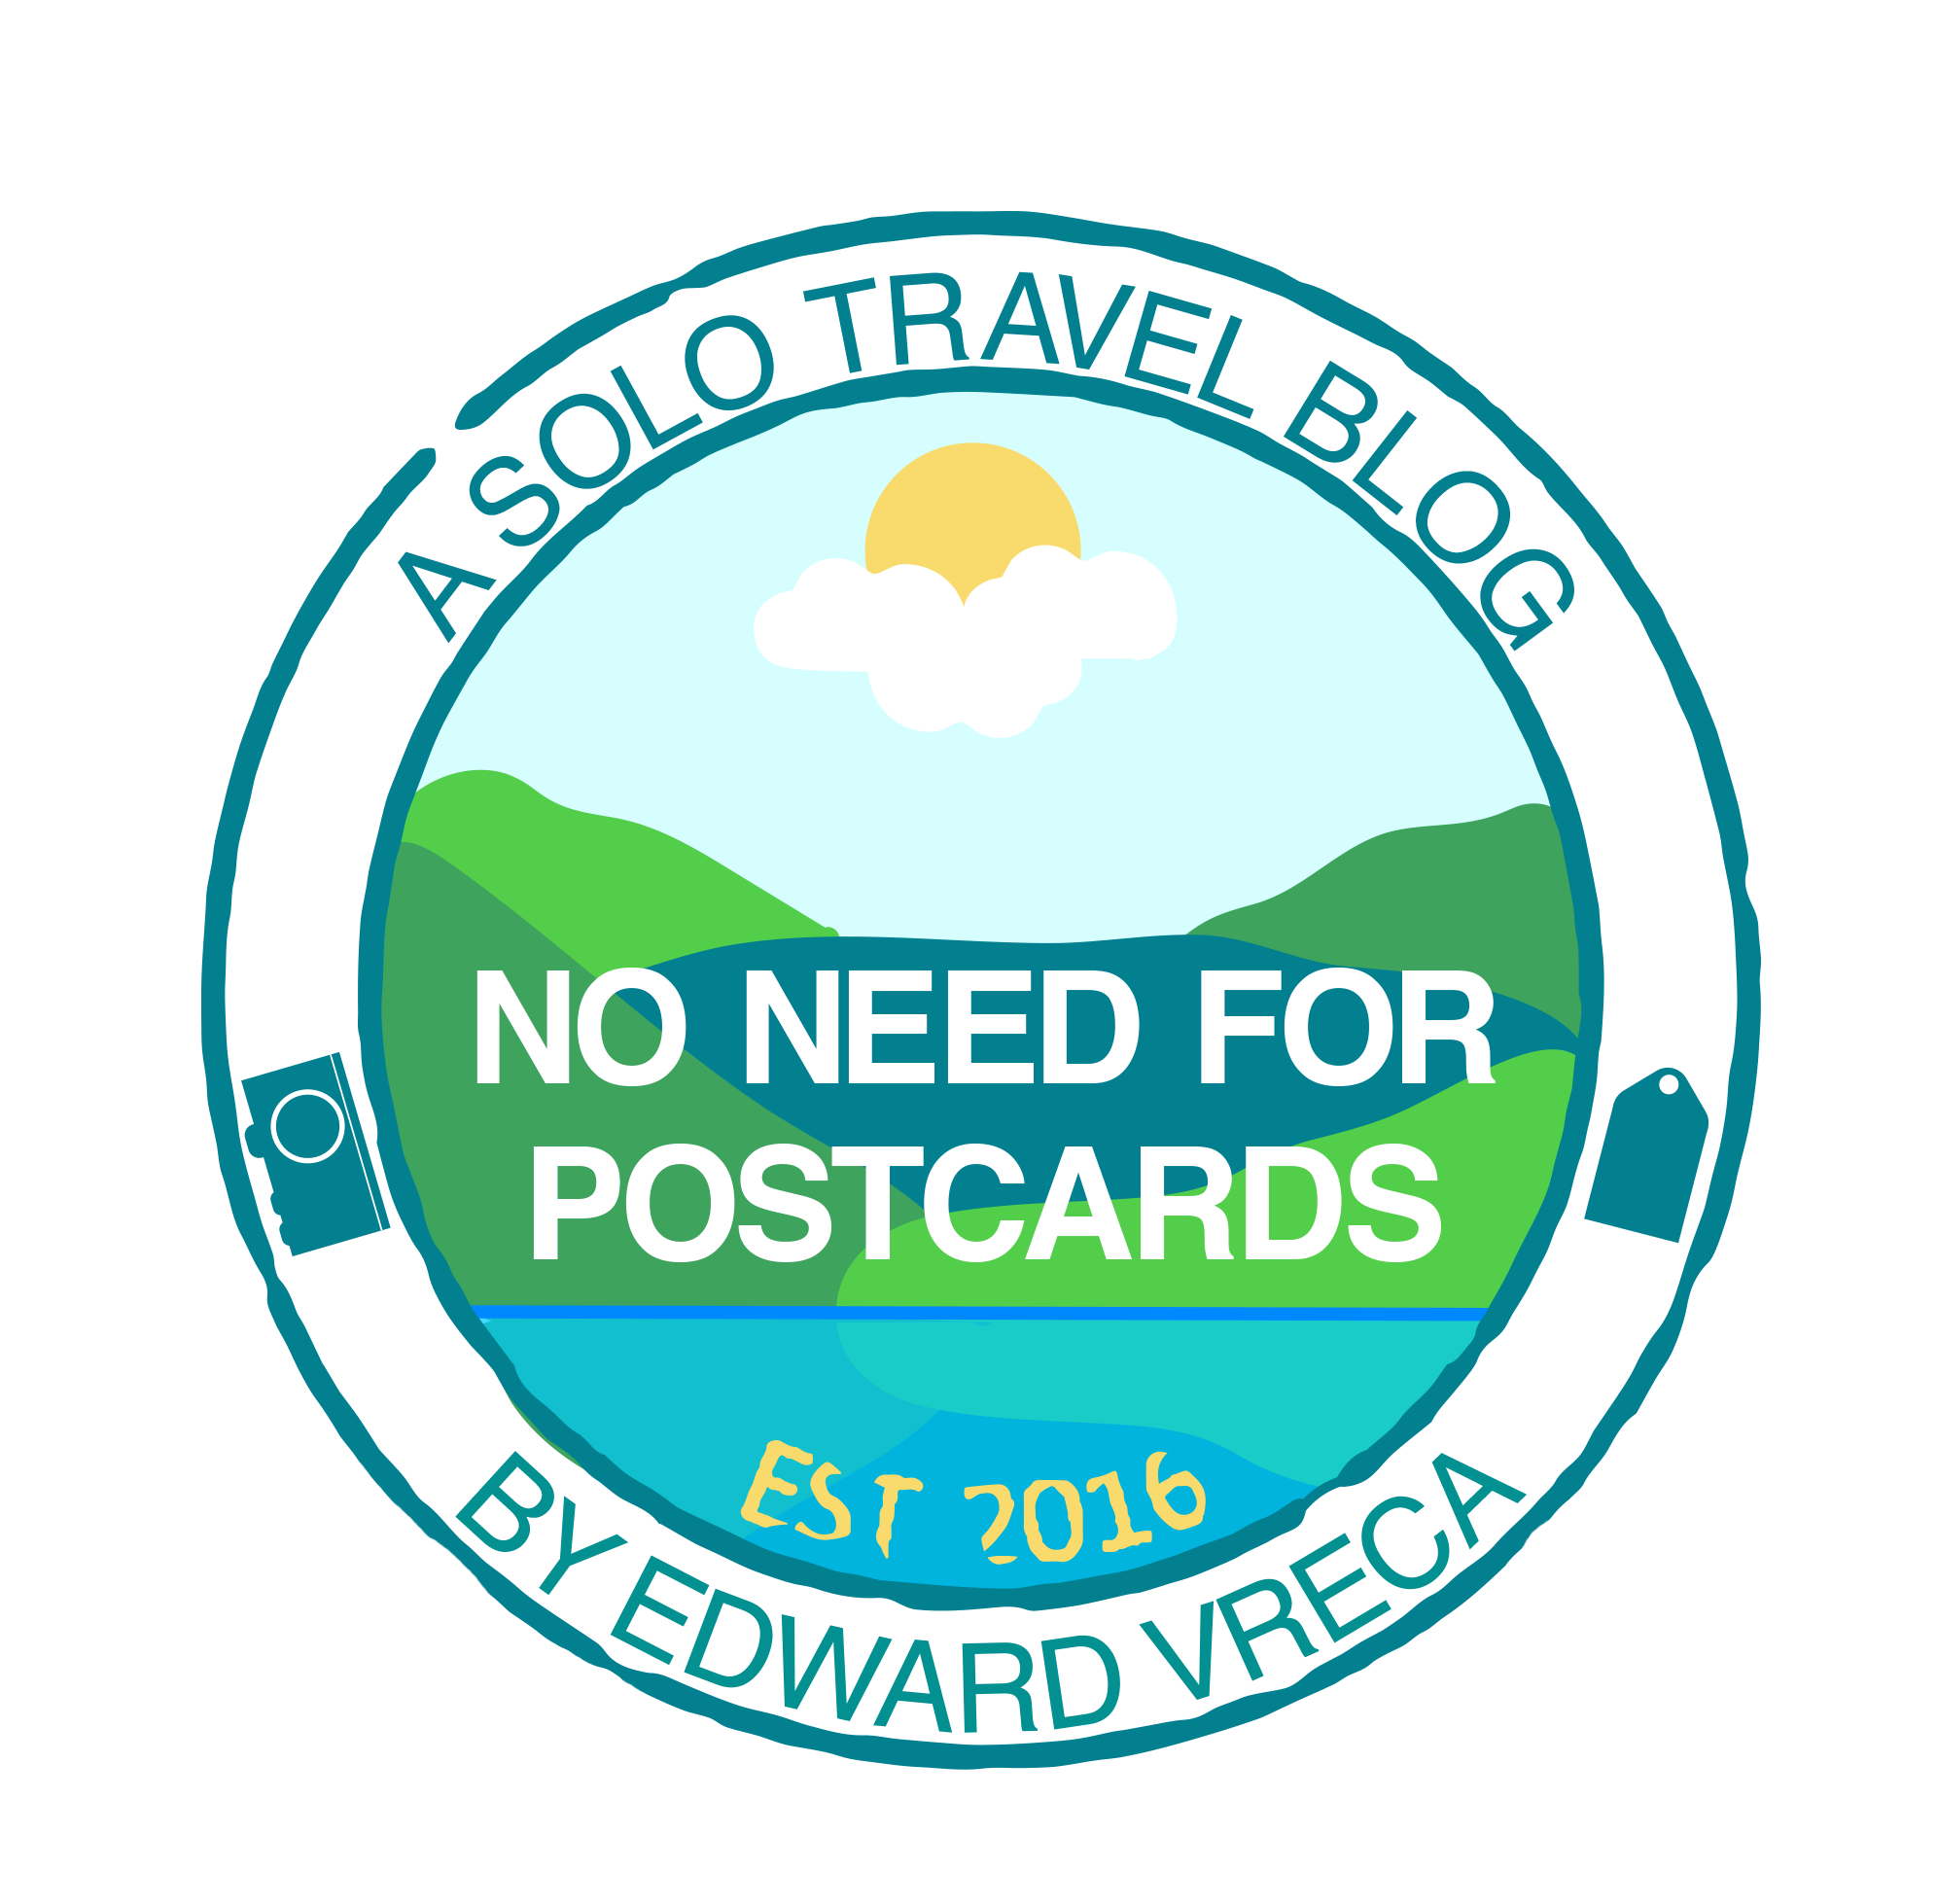 No need for postcards